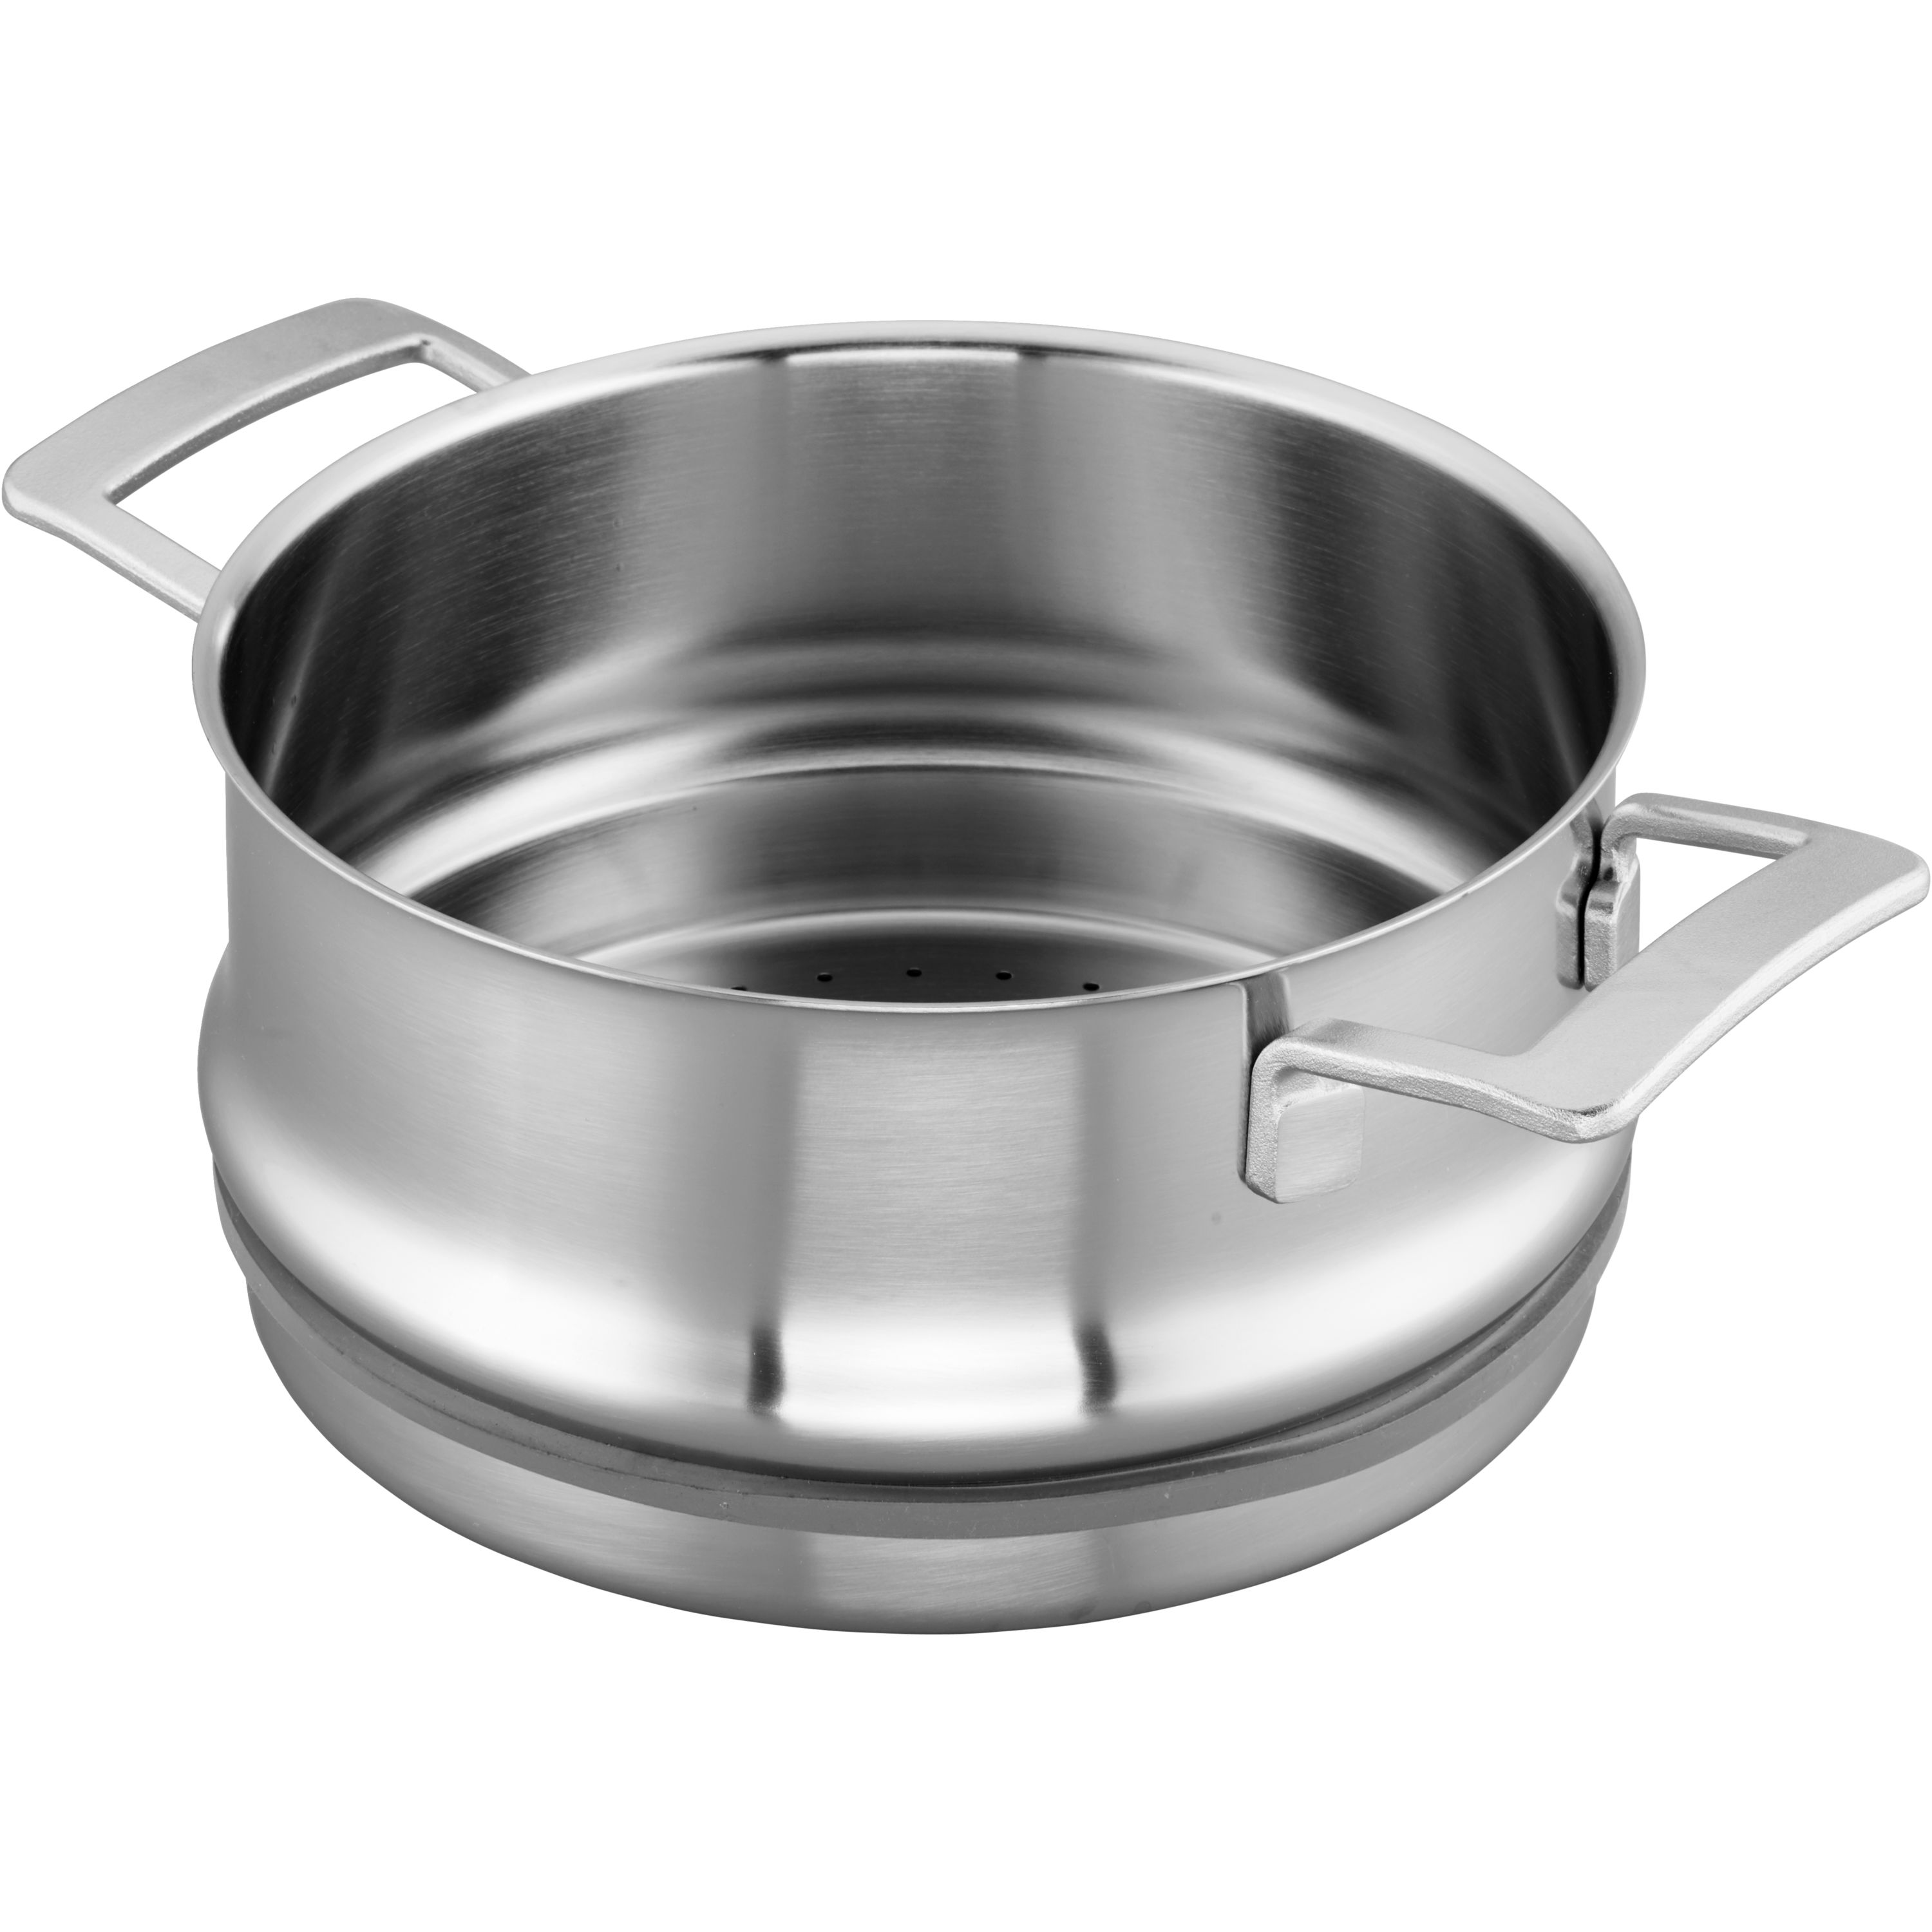 Demeyere Industry 5 Ply 5 5 Qt Stainless Steel Steamer Insert Fits 8 Qt Stock Pot 5 5 Qt Dutch Oven Official Zwilling Shop